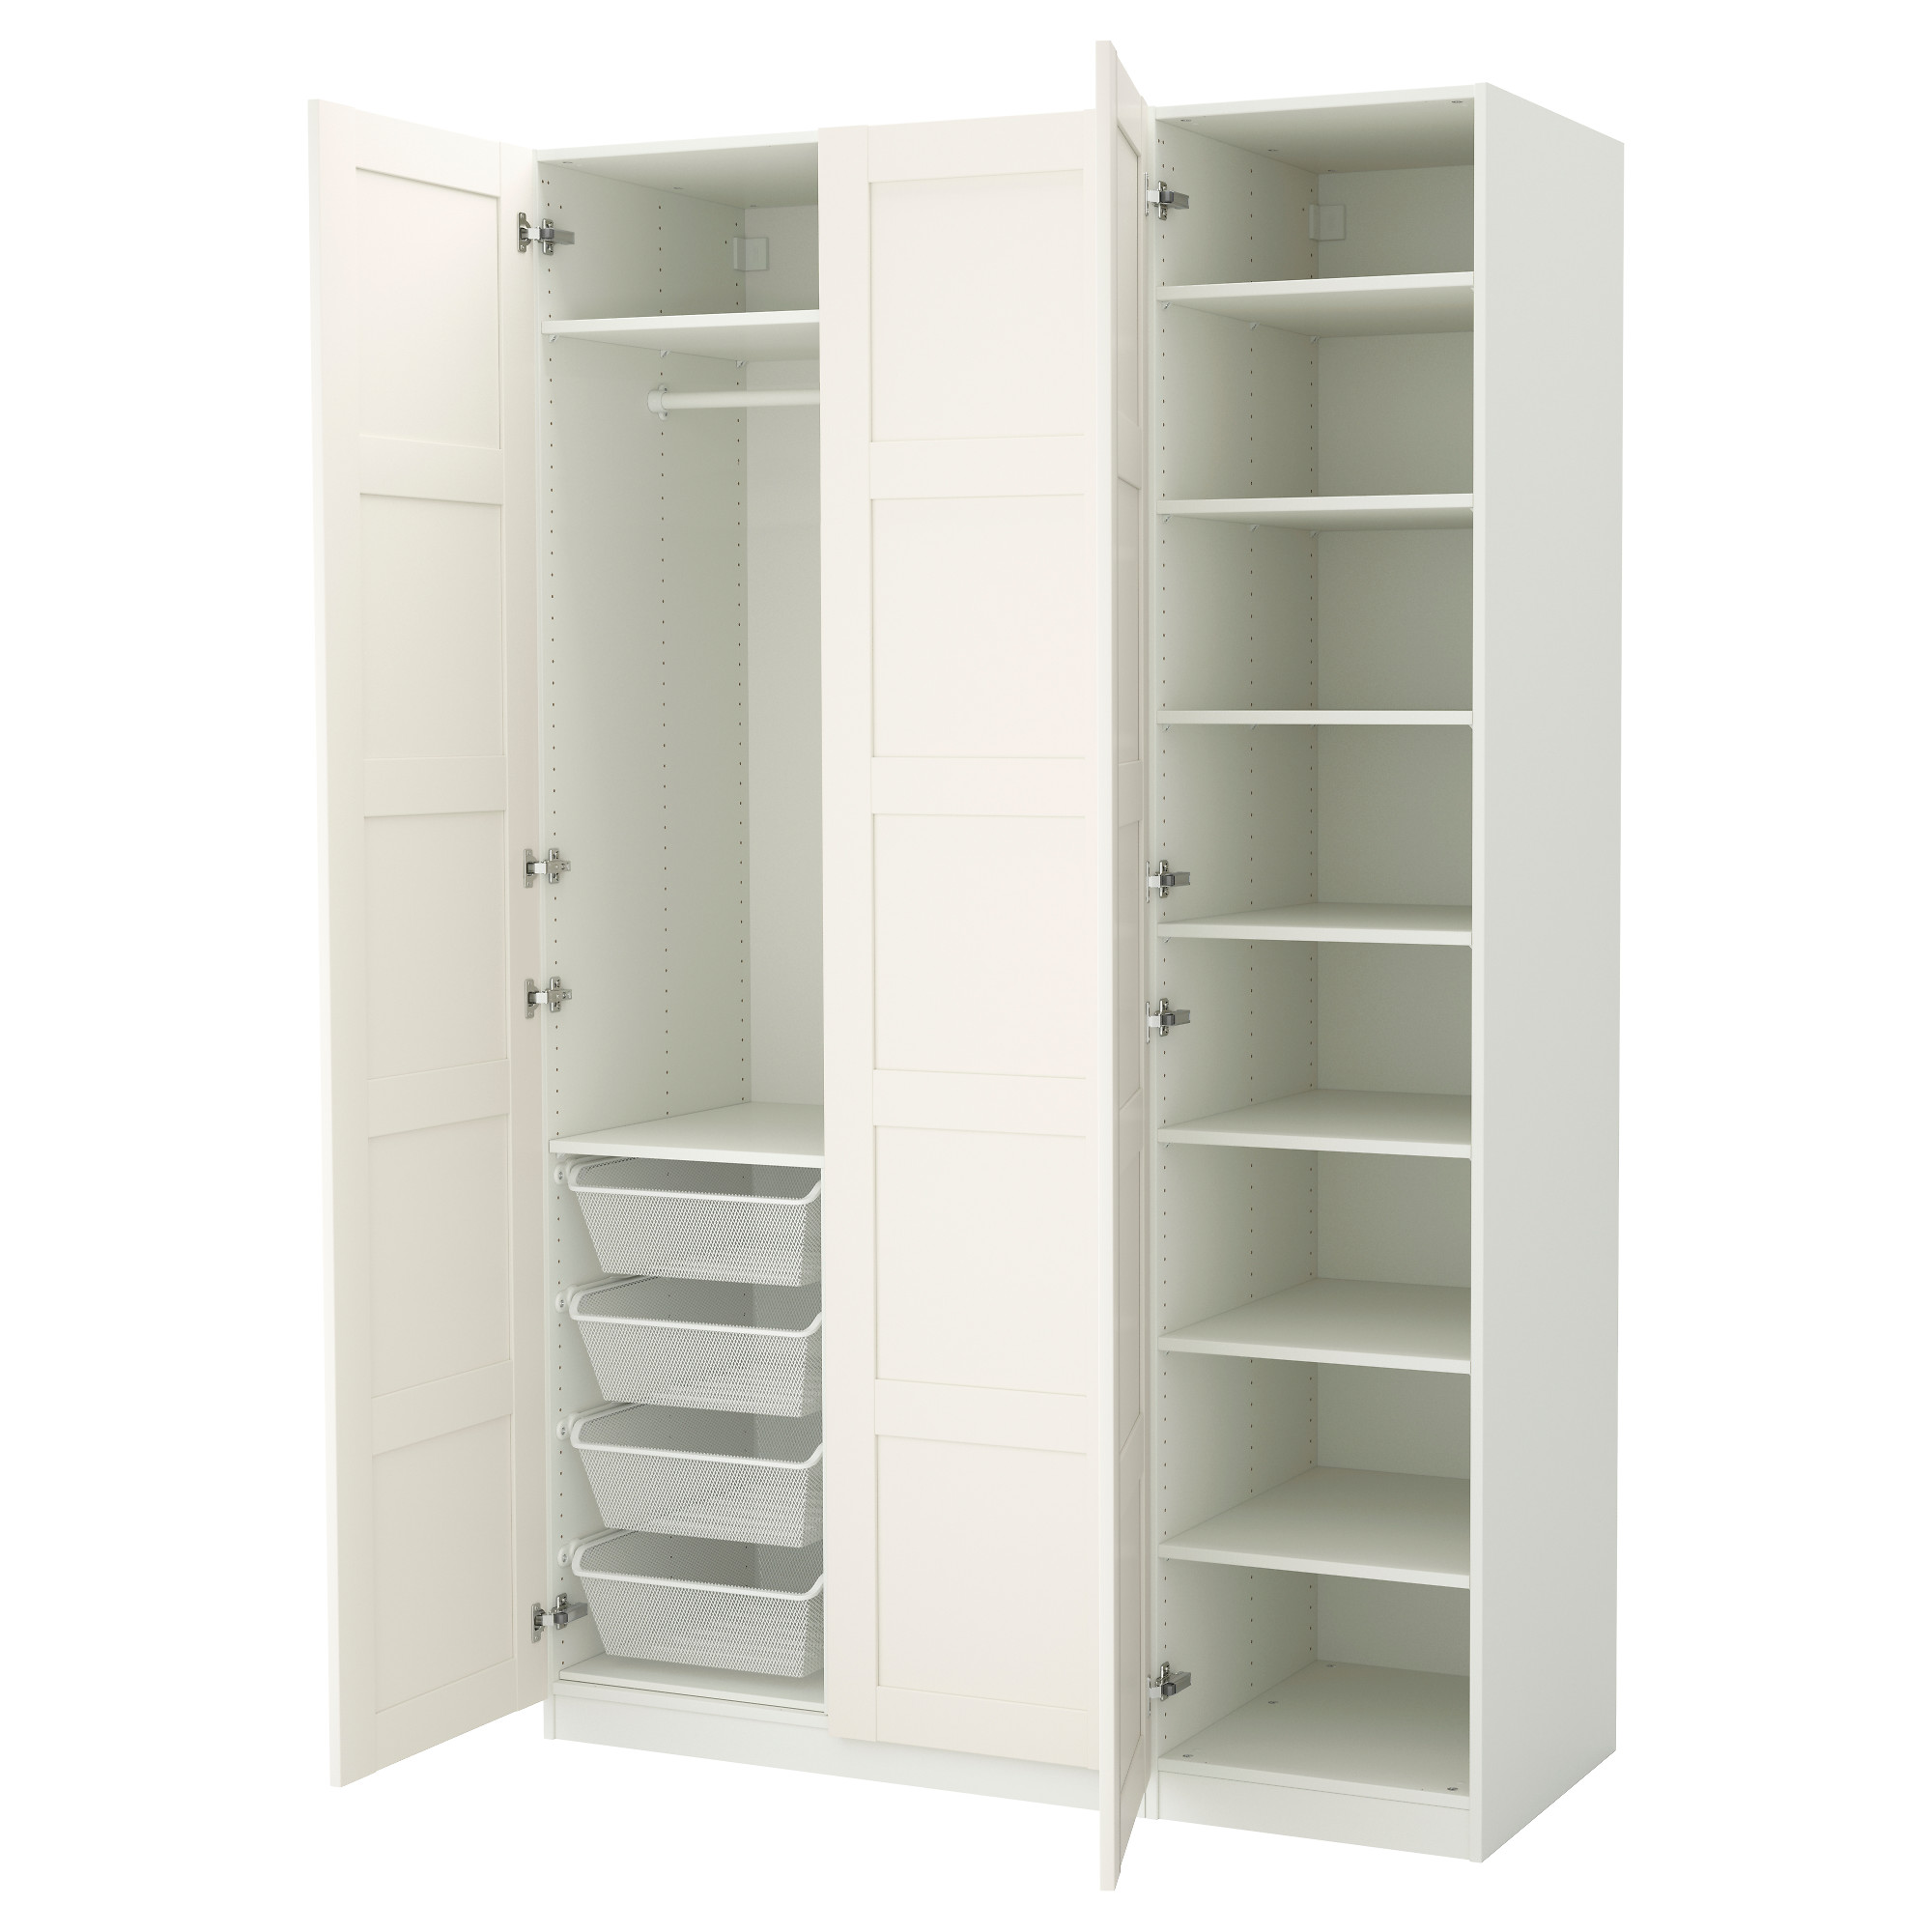 Ikea Armoire Angle Pax  Bright Shadow Online